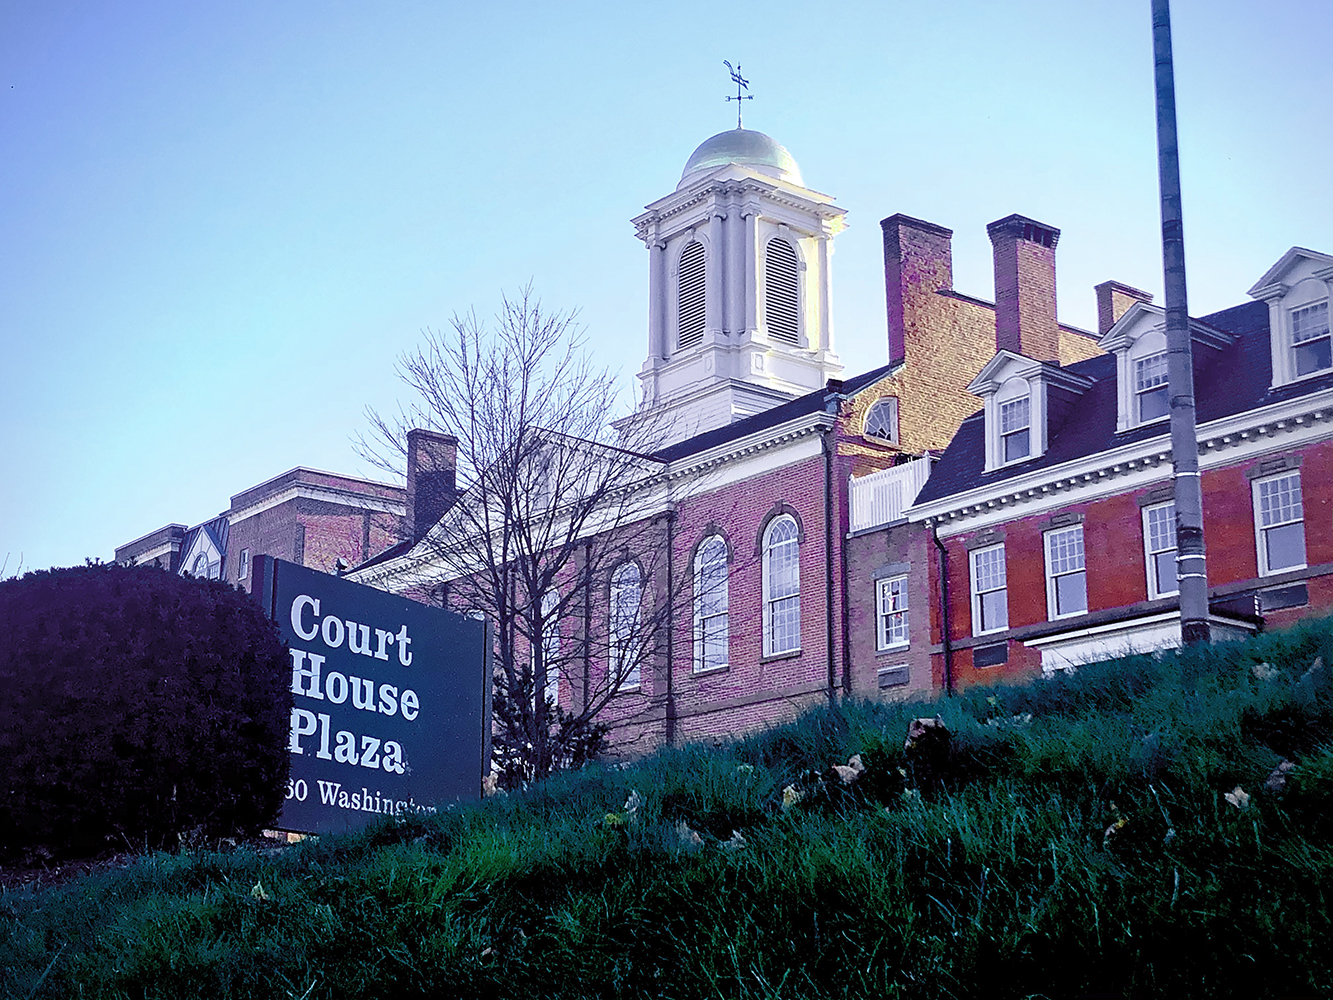 Court house building and front sign in Morristown New Jersey Architectural Photography